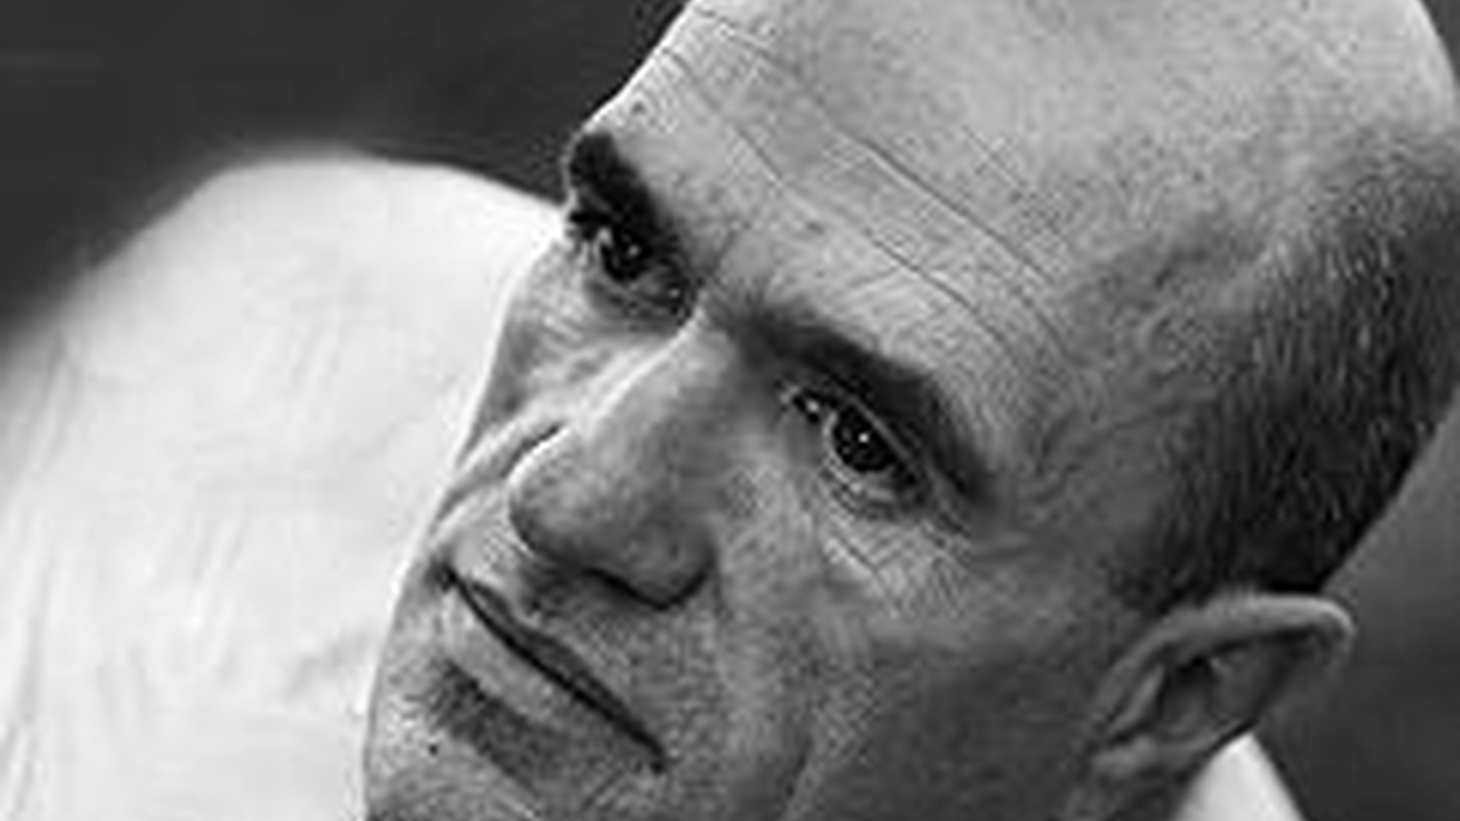 Colm Tóibín candidly describes the inspirations for the stories in his first collection. Sometimes a landscape is enough to trigger a story, sometimes an anecdote or a bit of family lore.